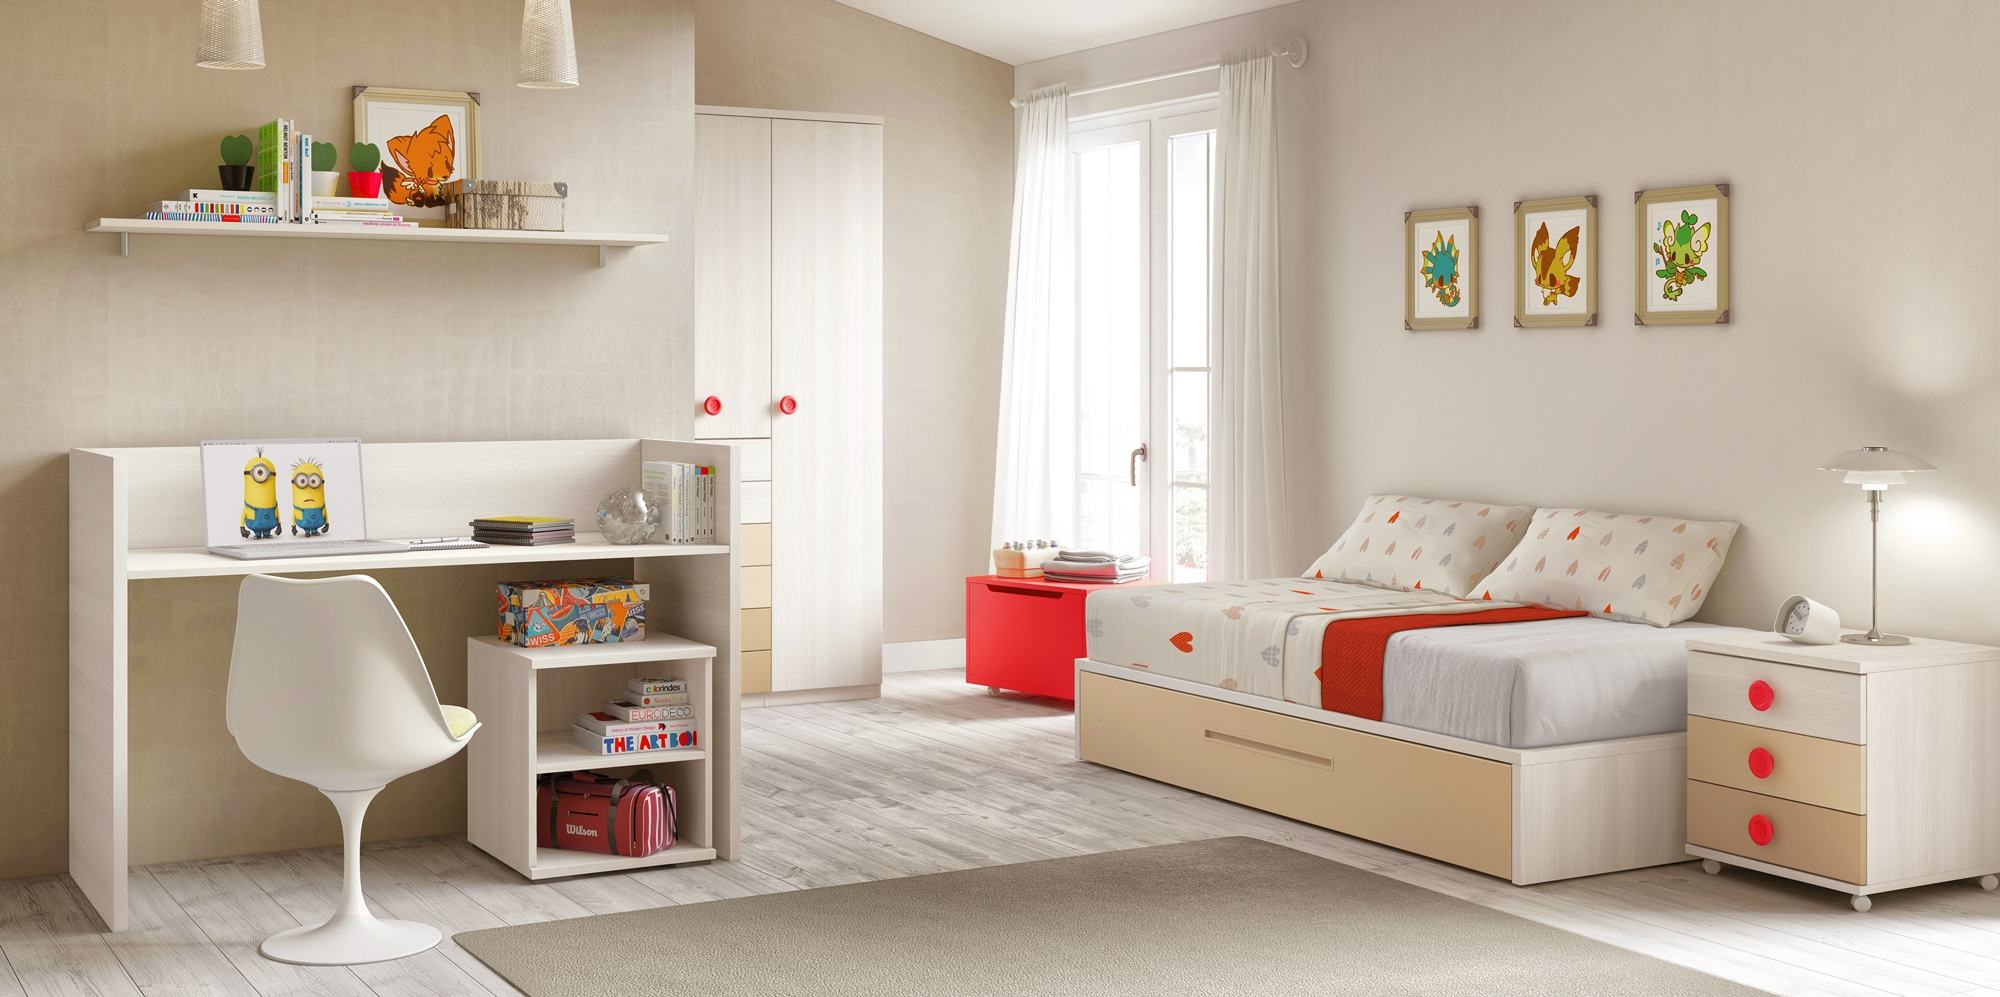 lit bb evolutif ikea charming lit bebe evolutif ikea with. Black Bedroom Furniture Sets. Home Design Ideas